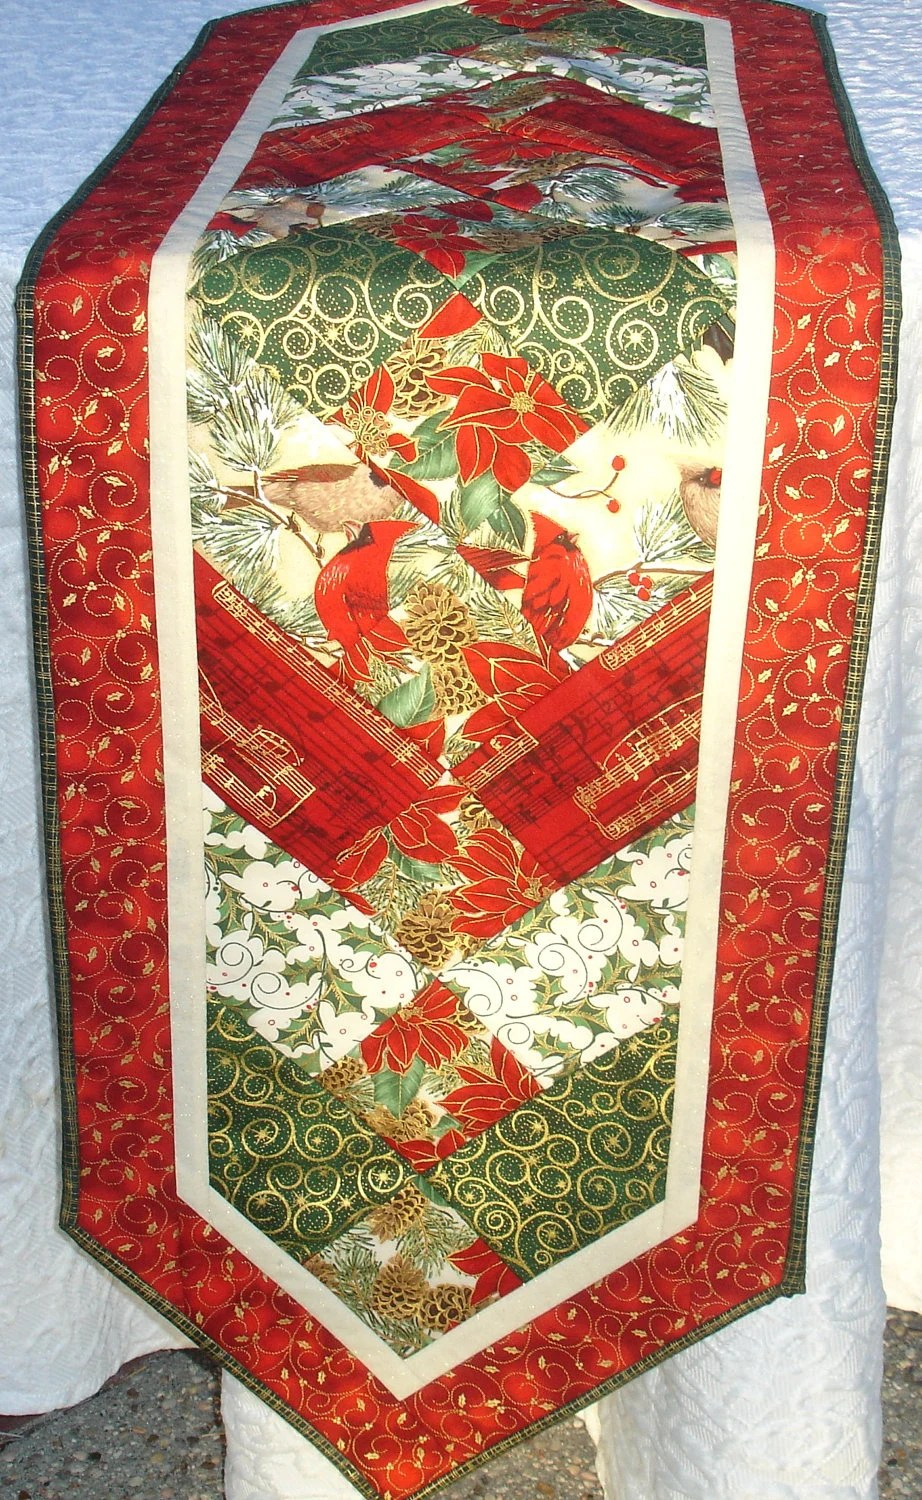 Groovy Pinterest Christmas Quilted Table Runners Download Free Architecture Designs Scobabritishbridgeorg